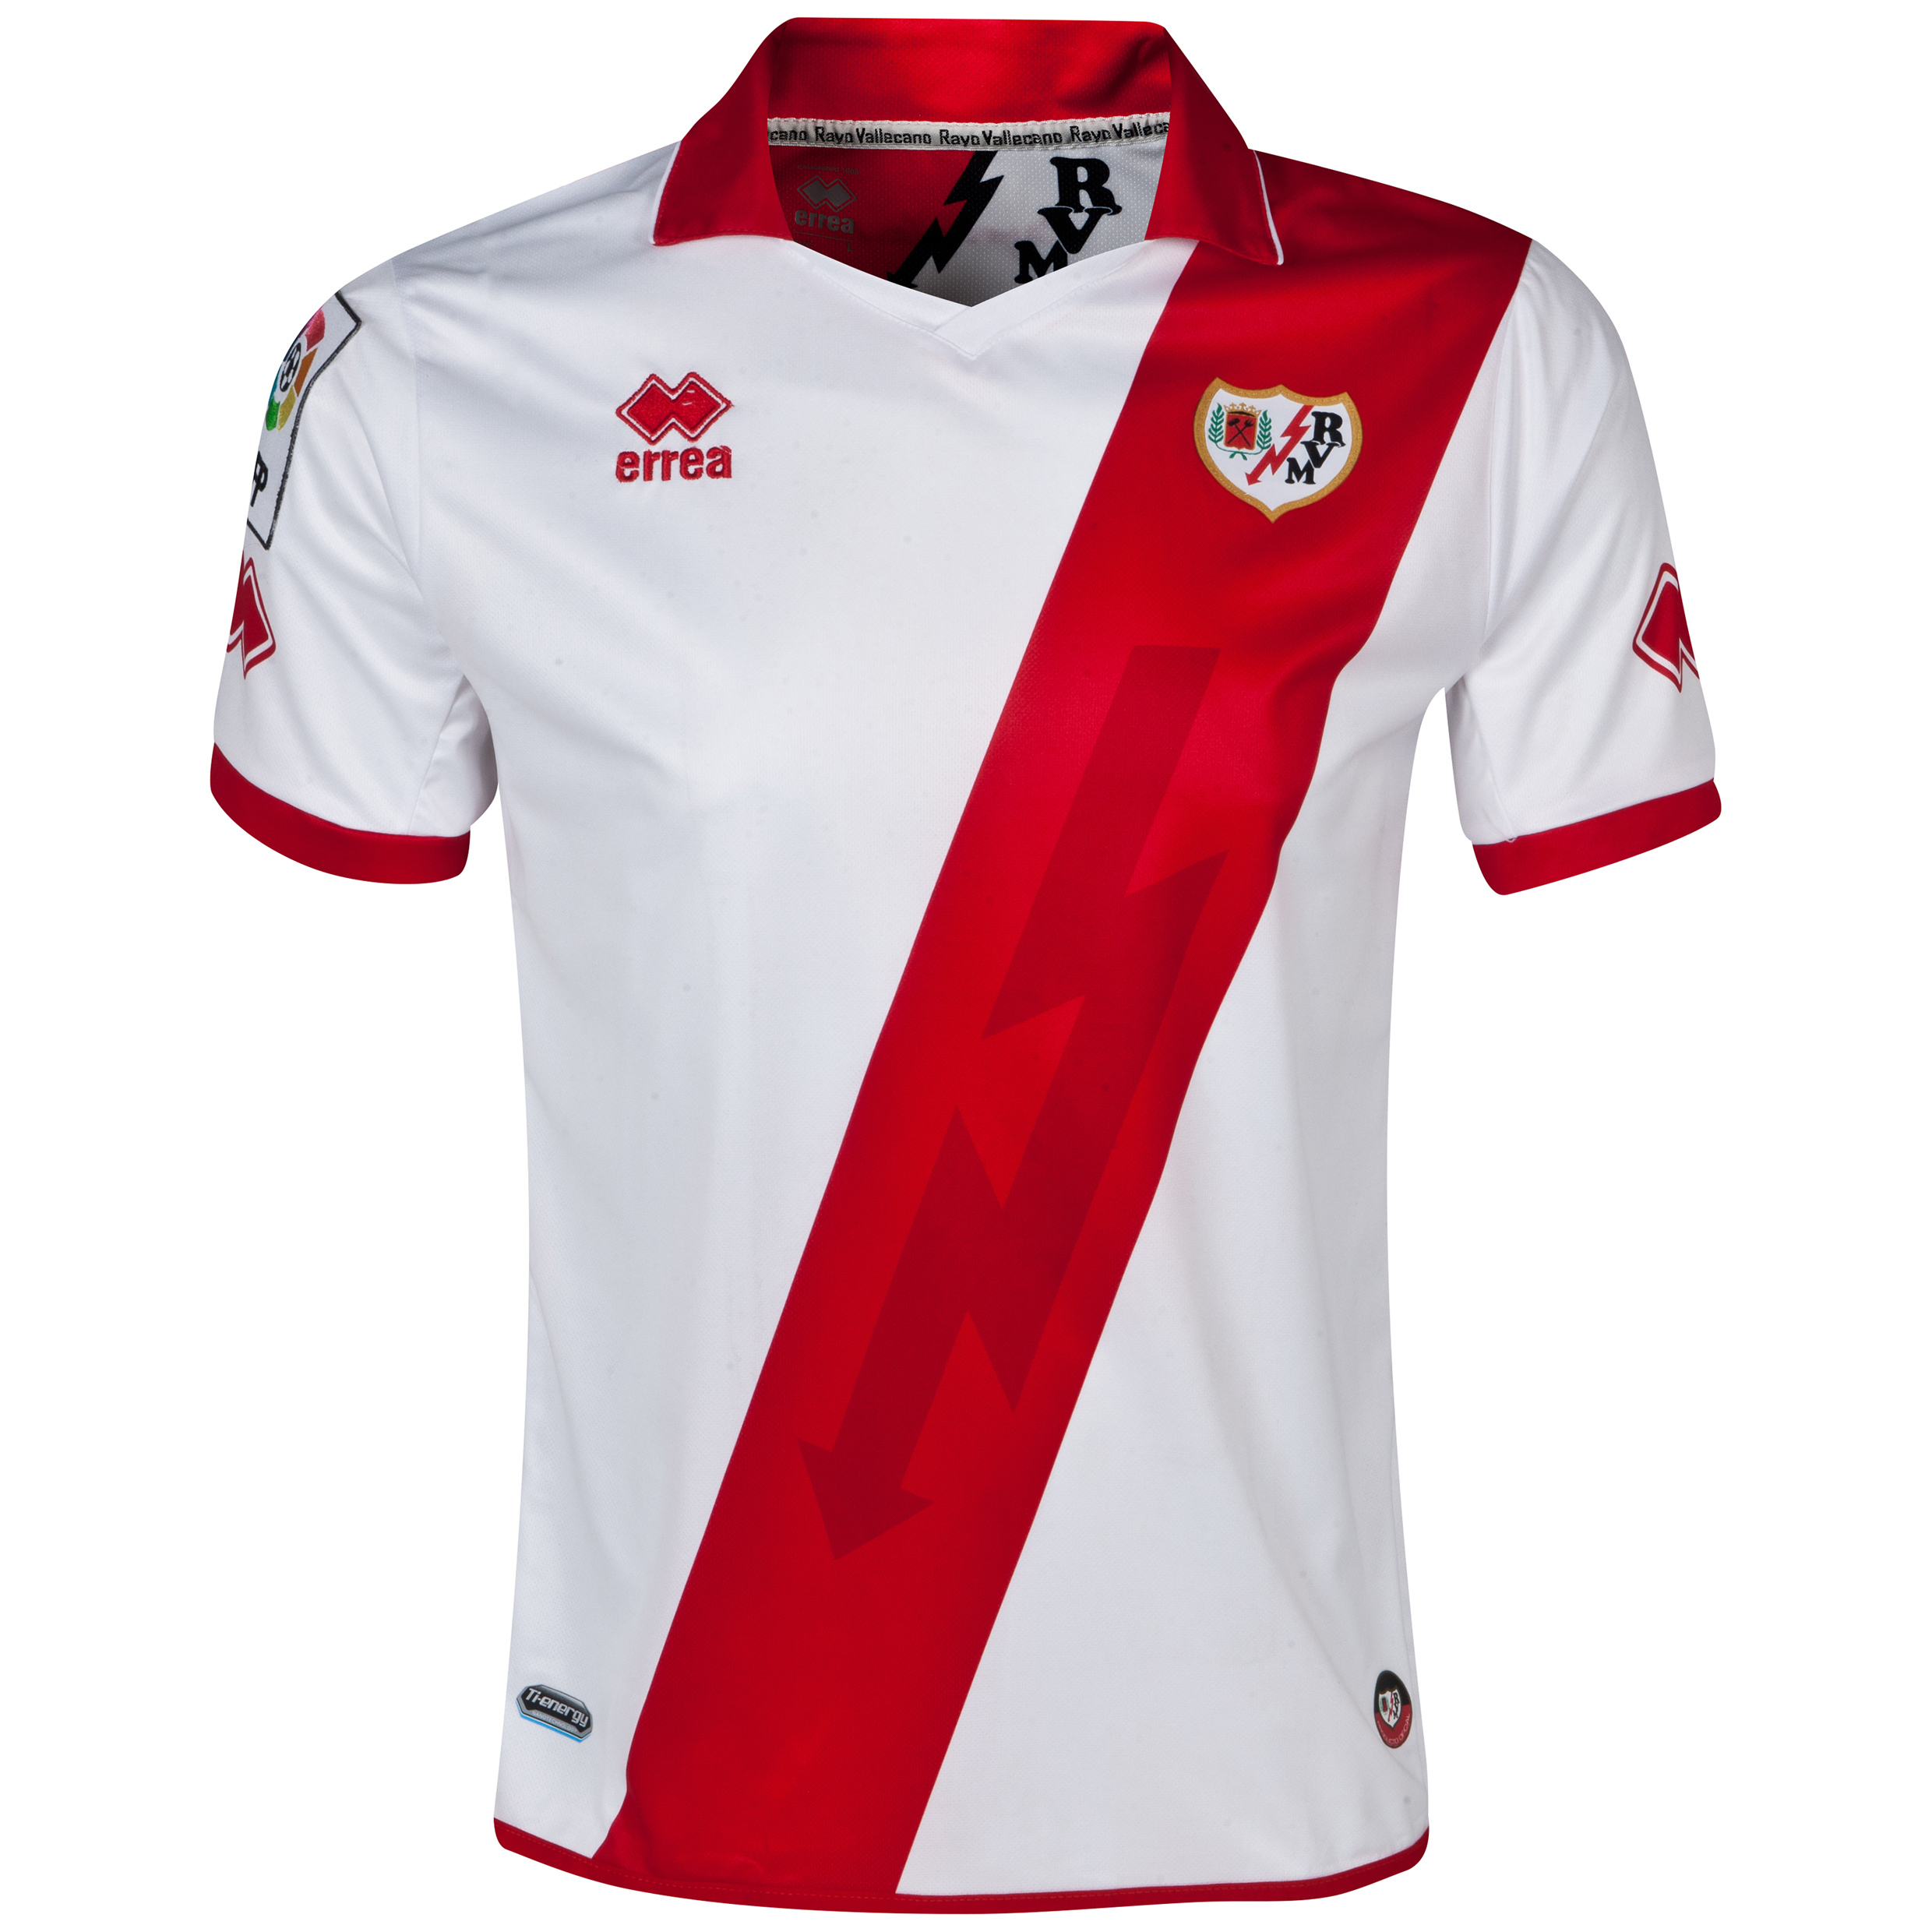 Rayo Vallecano Home Shirt 2013/14